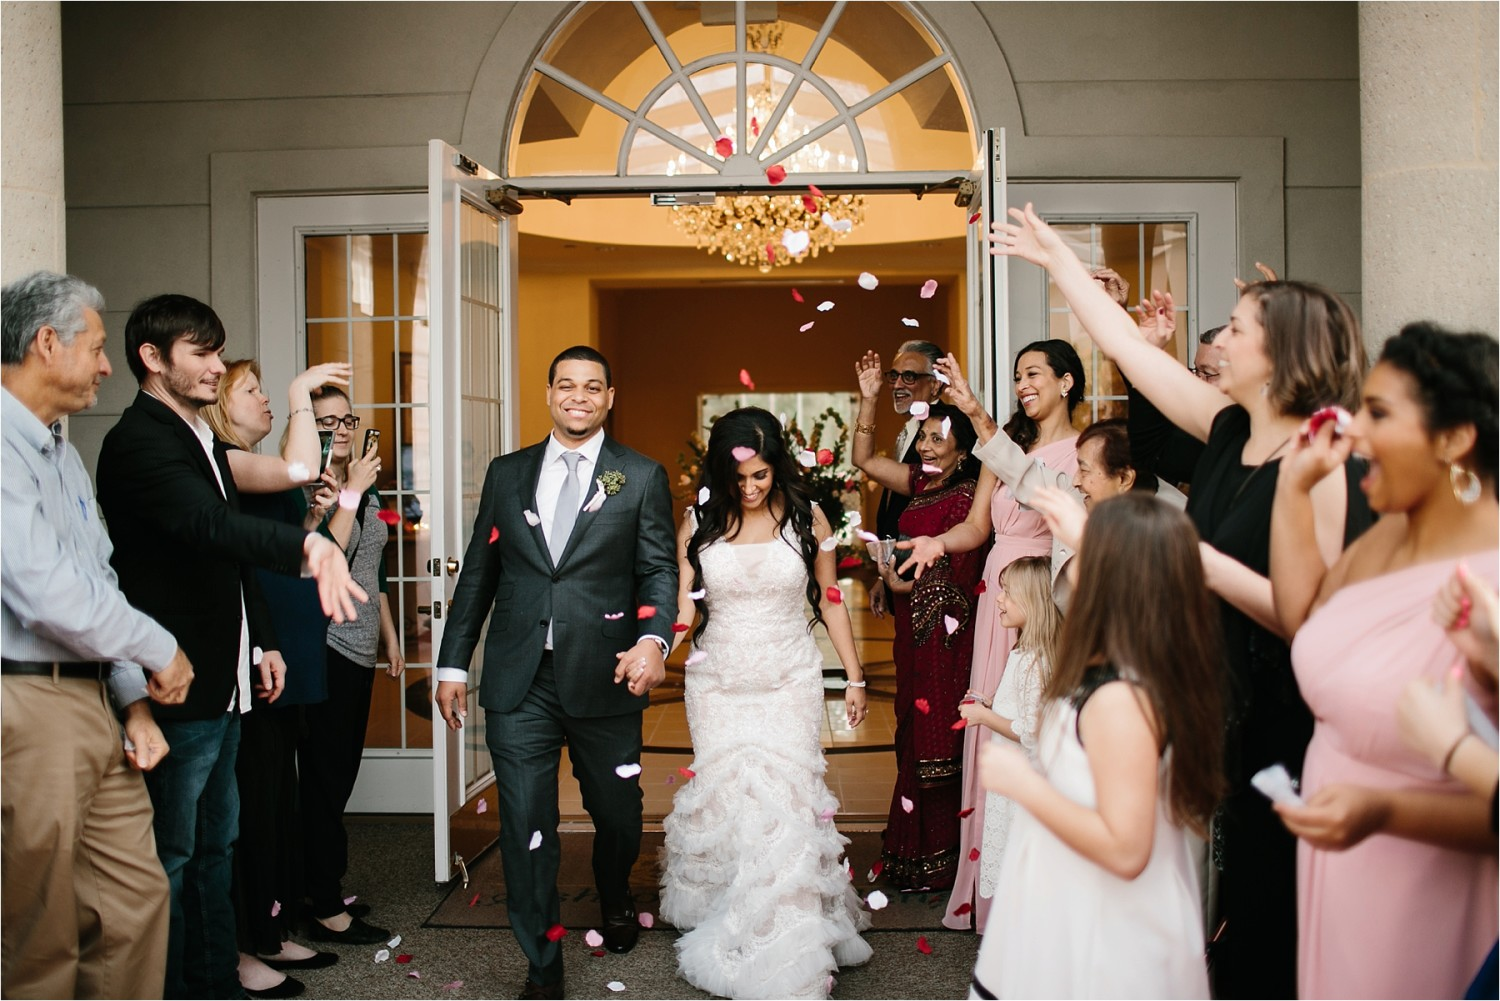 Jeanpaul + Ann __ a colorful wedding at Ashton Gardens in Houston TX by North Texas Wedding Photographer Rachel Meagan Photography _ 44